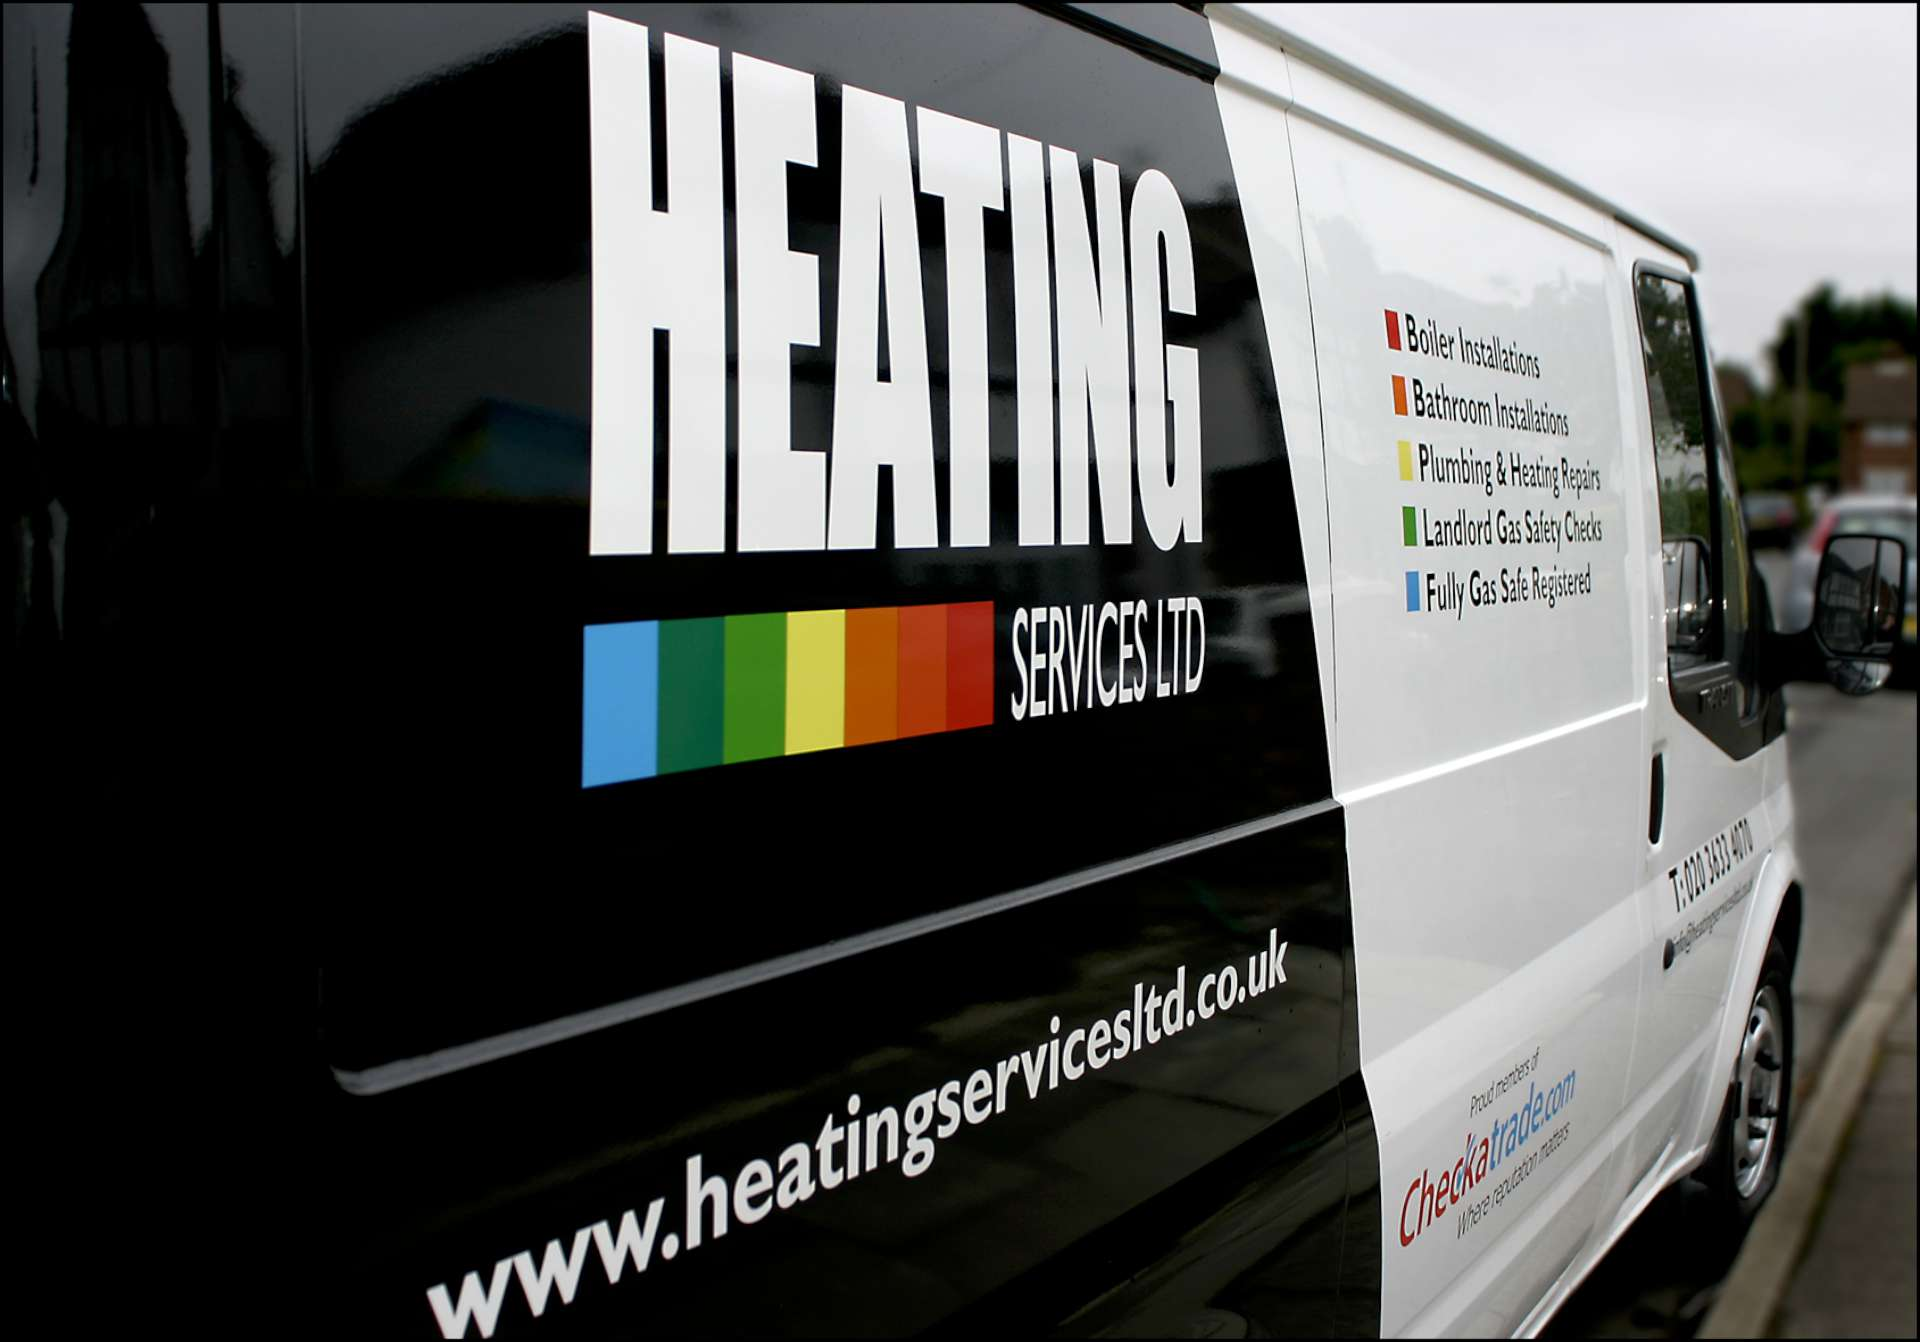 Plumbers_ Boiler Installation_ Service and Repairs and Bathroom Design and Installation by Heating Services Ltd in Beckenham (5)